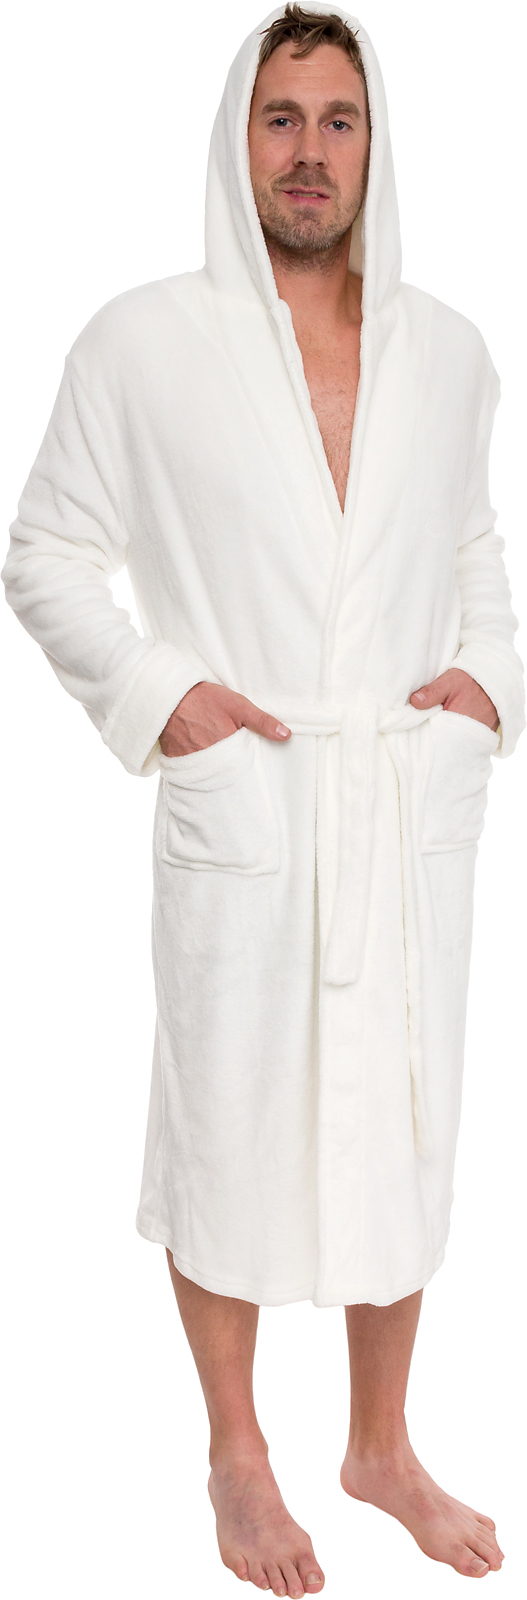 ross michaels mens plush shawl kimono bathrobe hooded robe ebay. Black Bedroom Furniture Sets. Home Design Ideas